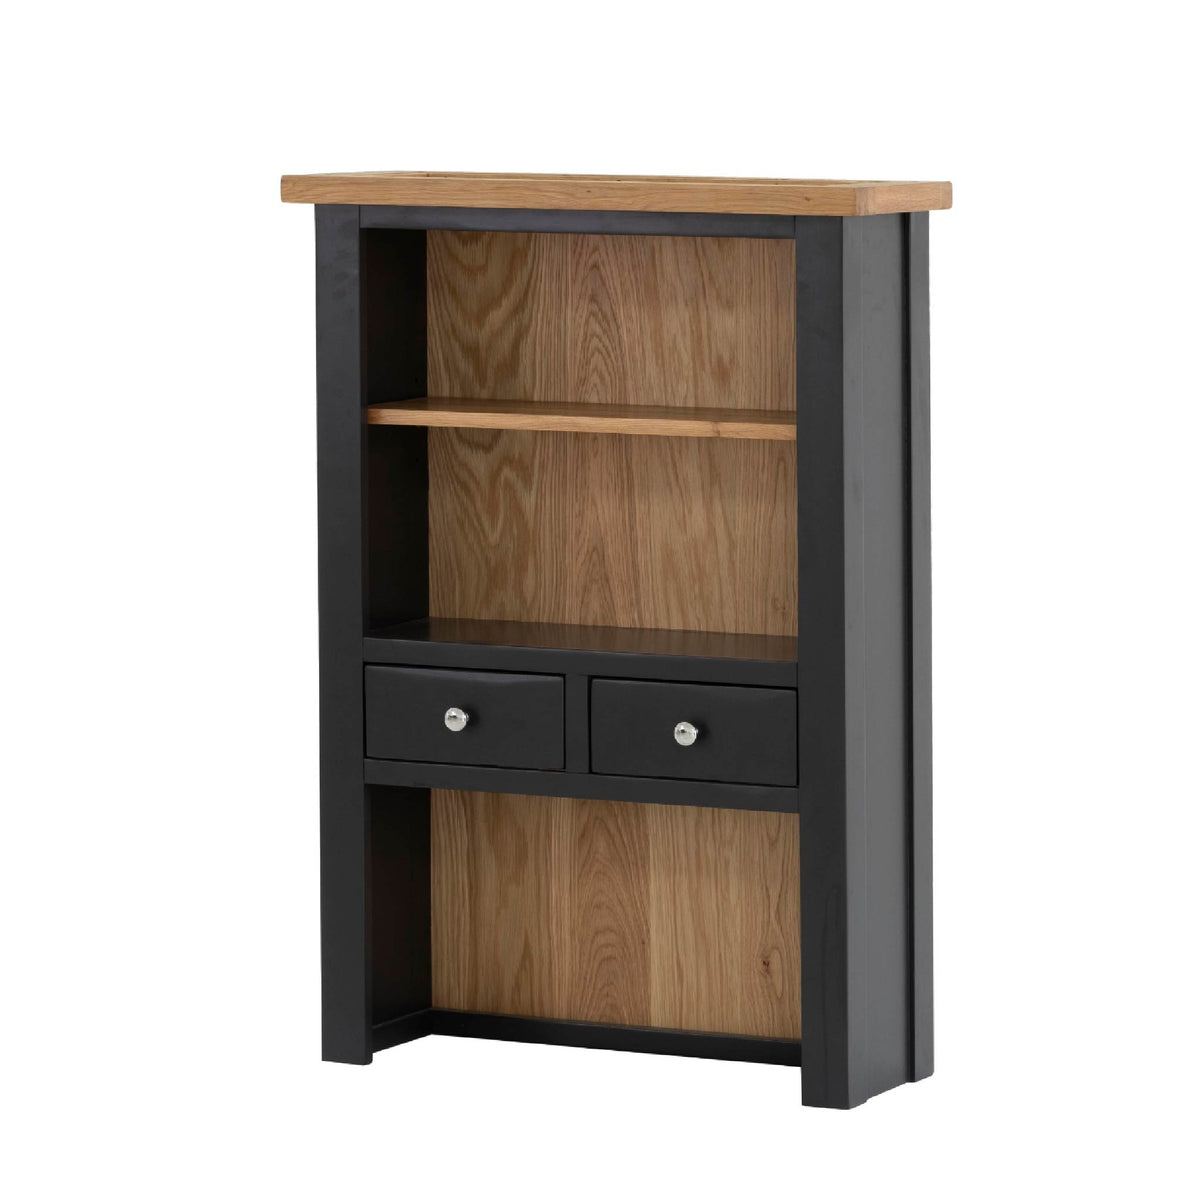 Charlestown Black 2 Drawer Hutch - Angled View